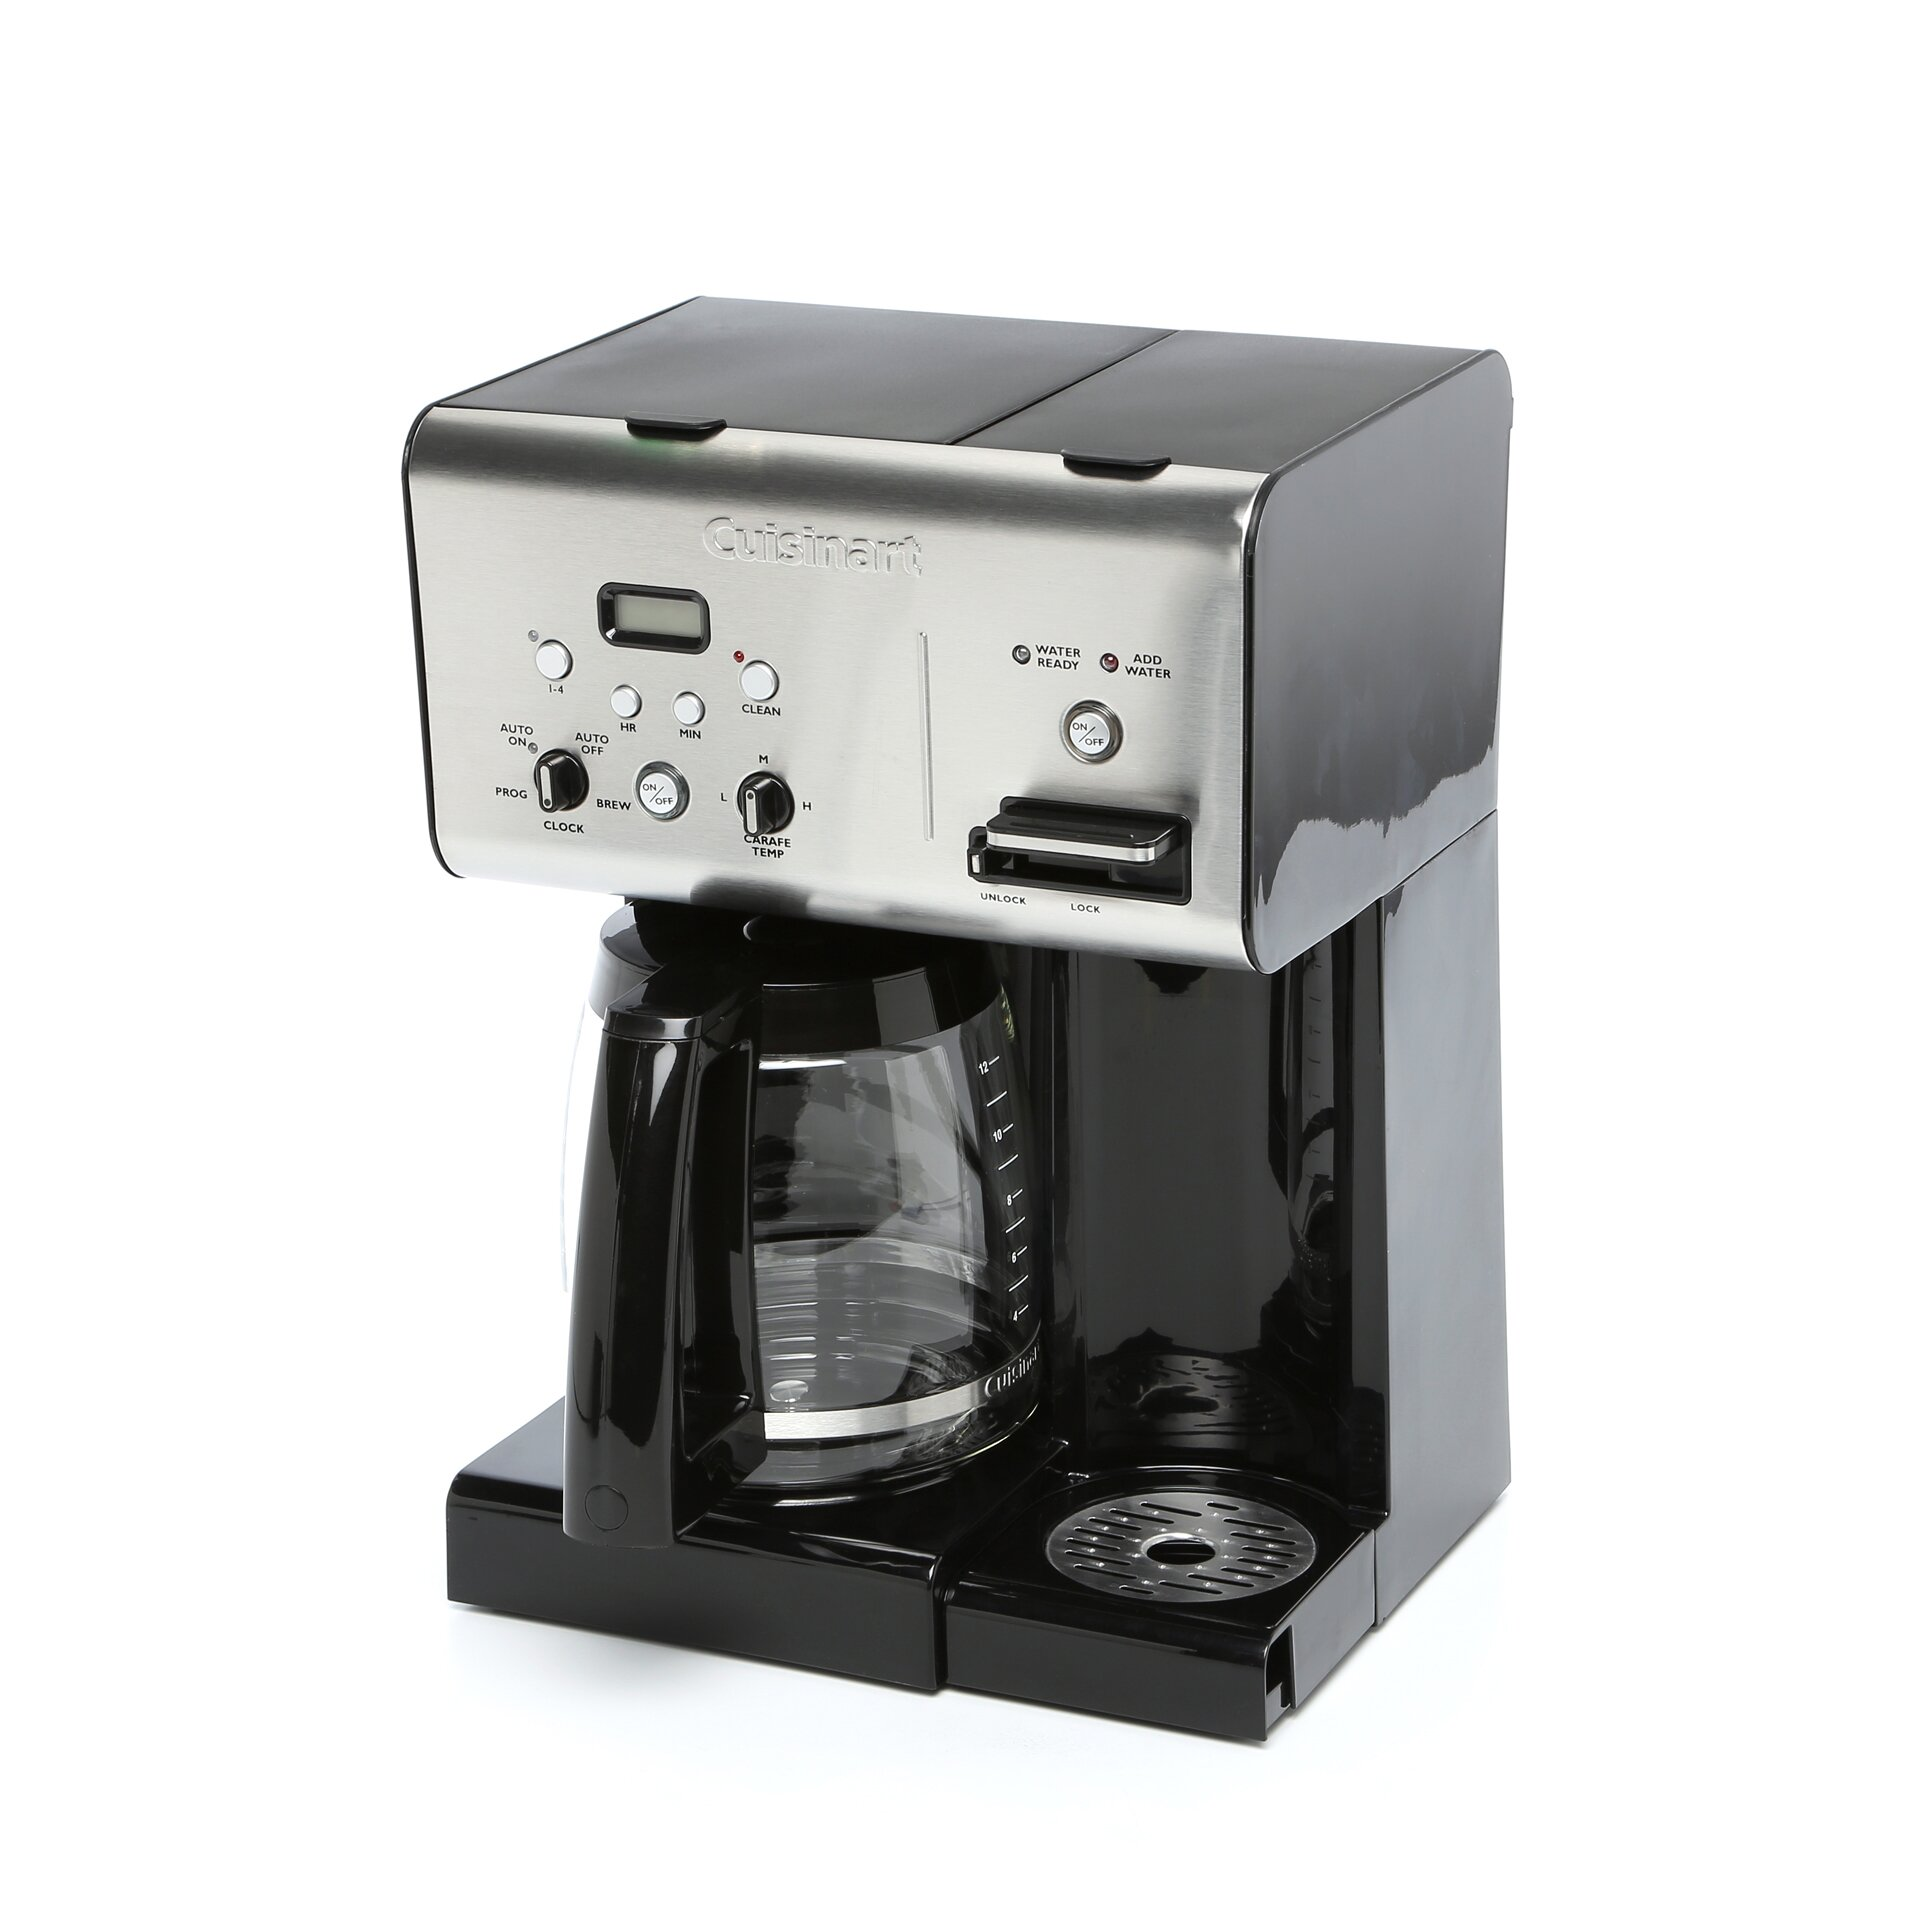 Cuisinart Coffee Maker 12 Cup Programmable Reviews : Cuisinart Programmable 12 Cup Coffee Maker with Hot Water System & Reviews Wayfair